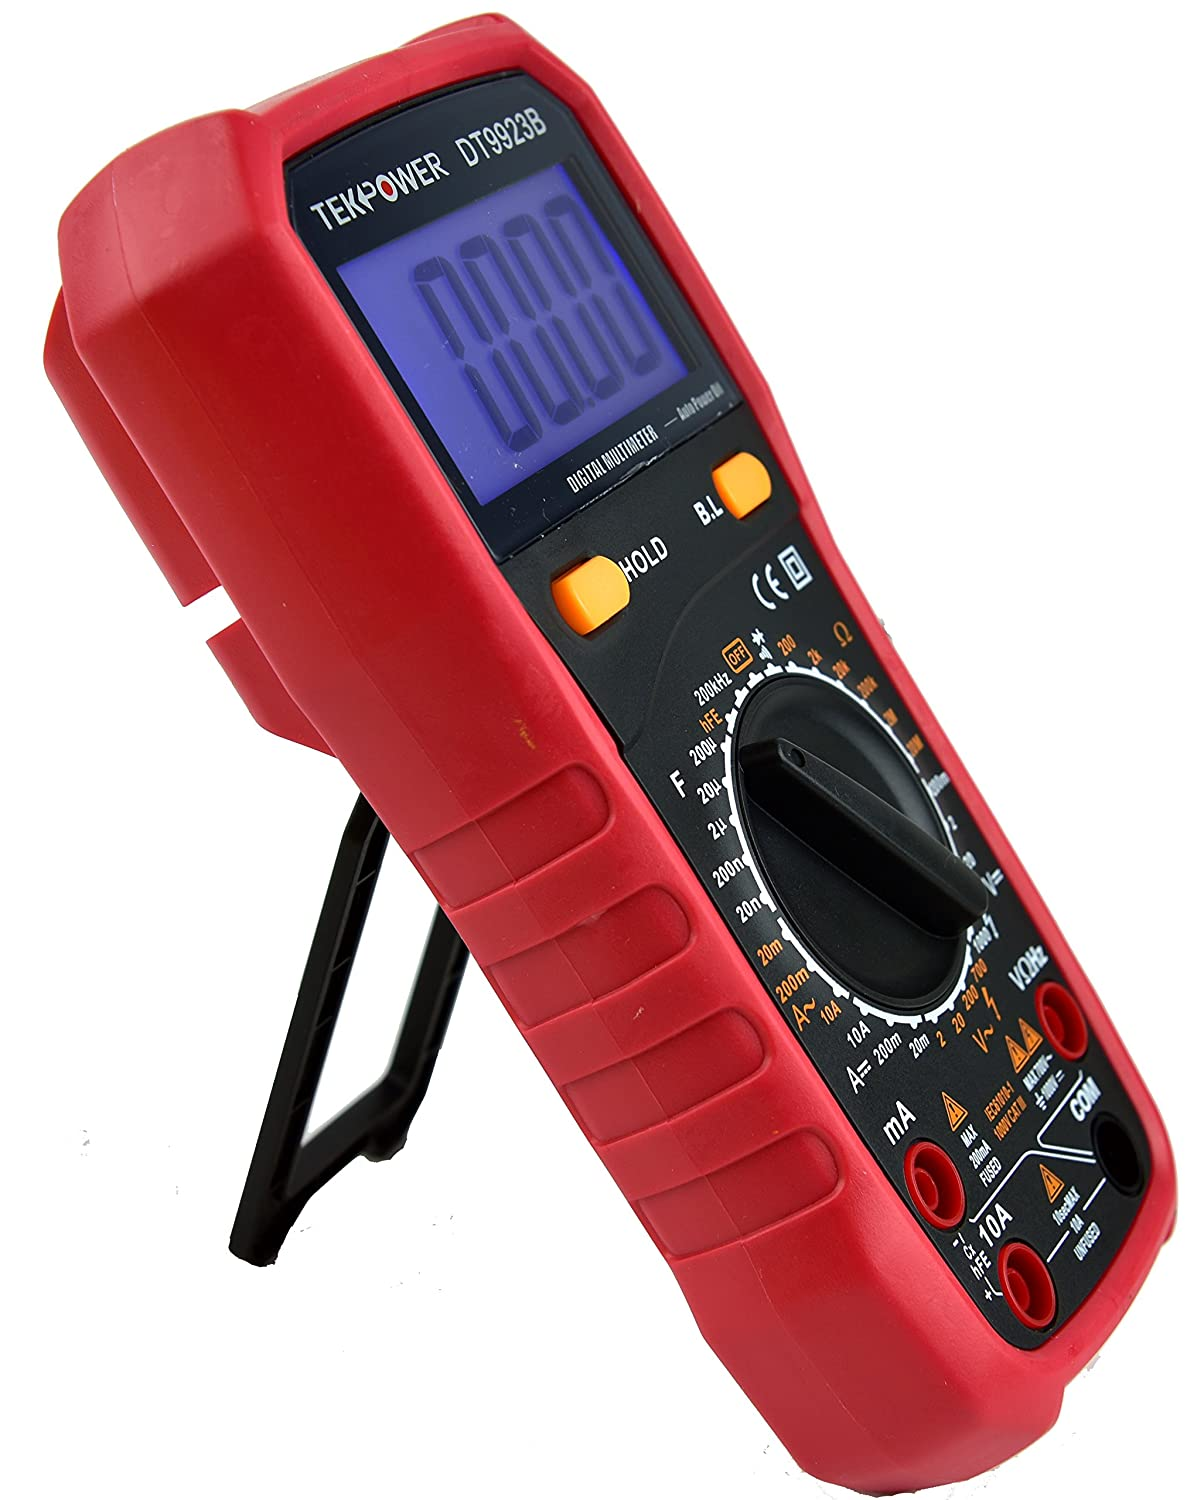 Tekpower TP9923B 4 1 2 Digits High Accuracy Multimeter with Display 19999 and Back Light Digital Multimeter , Alike INNOVA MS8268